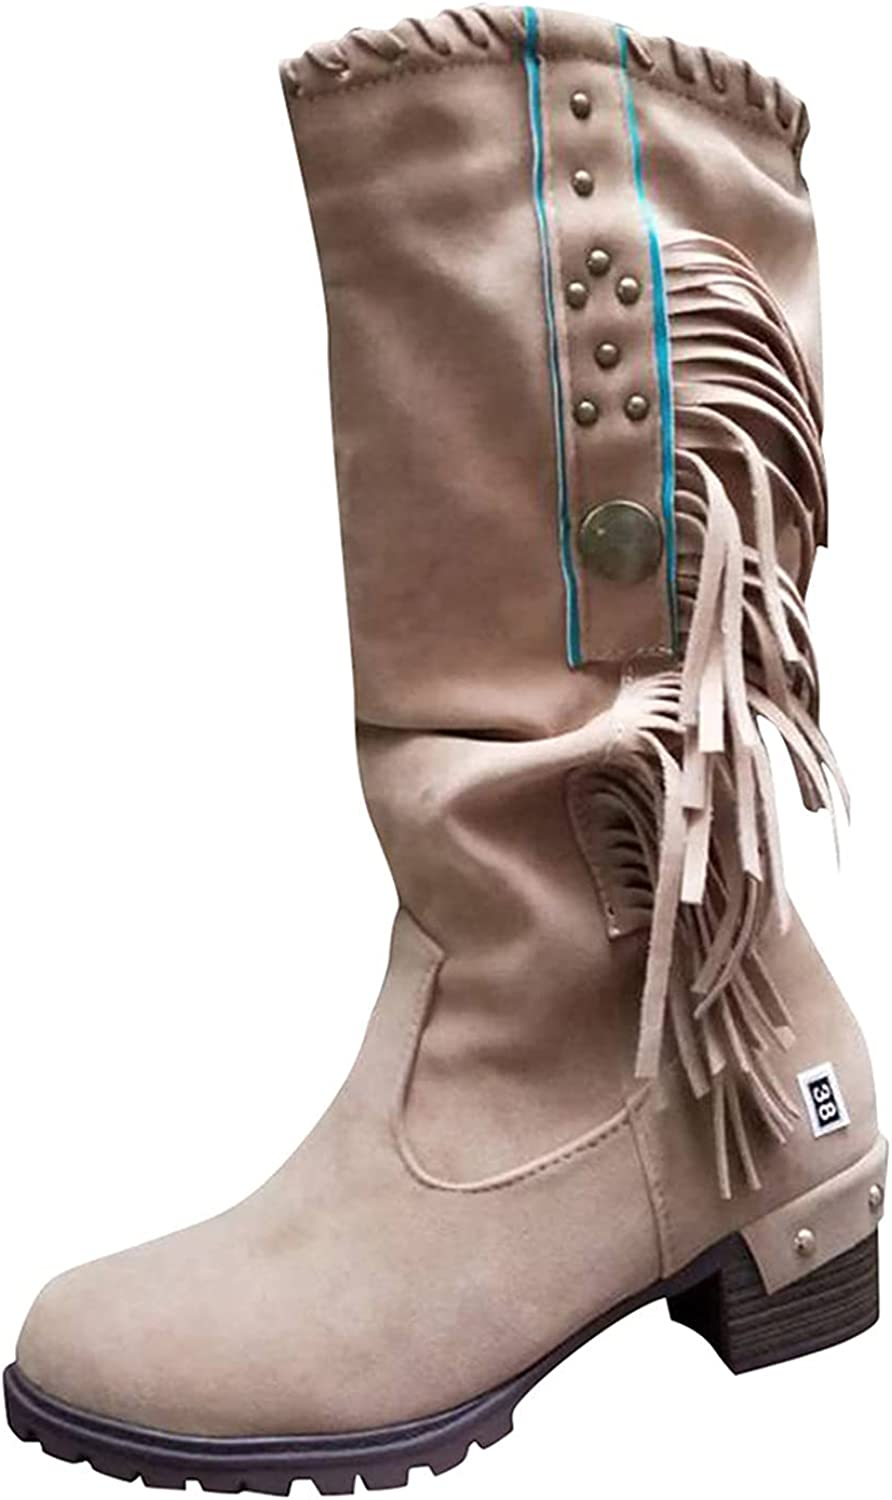 Women'S BootsEmbroidered Printed Chunky Platform Boots Round Toe ChunkyPunk BootiesRain Boots for Women Waterproof